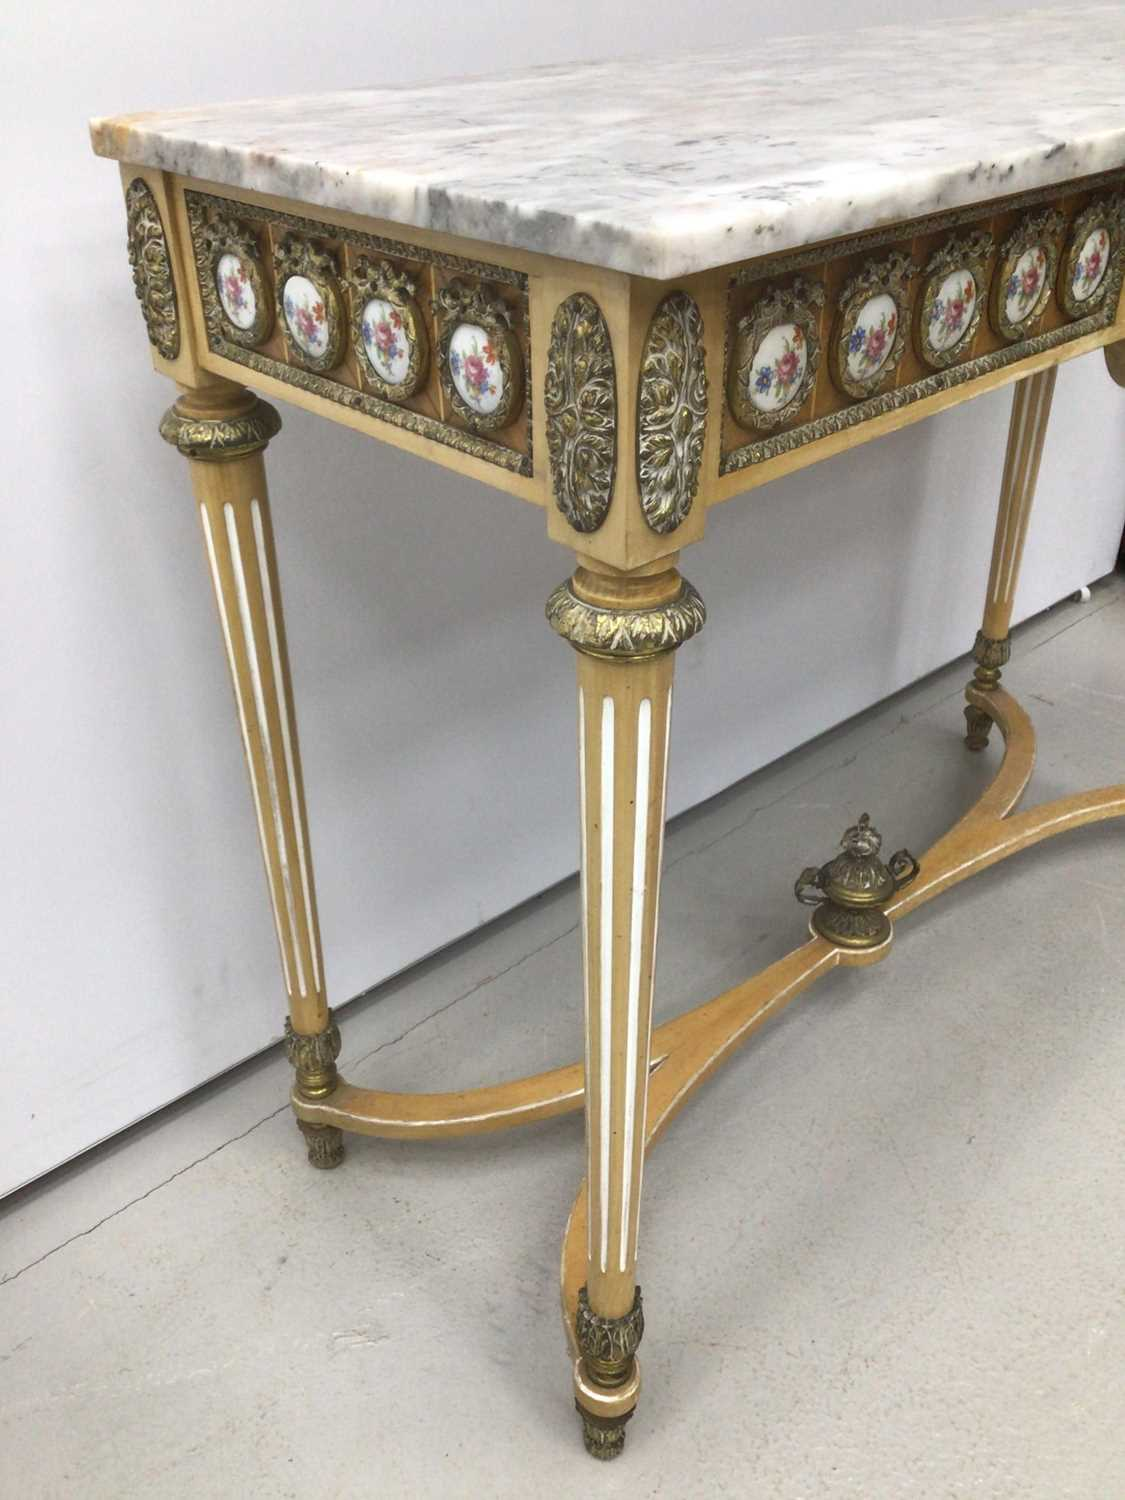 Antique style hall table with marble top, frieze inset with porcelain plaques on fluted turned legs - Image 3 of 7